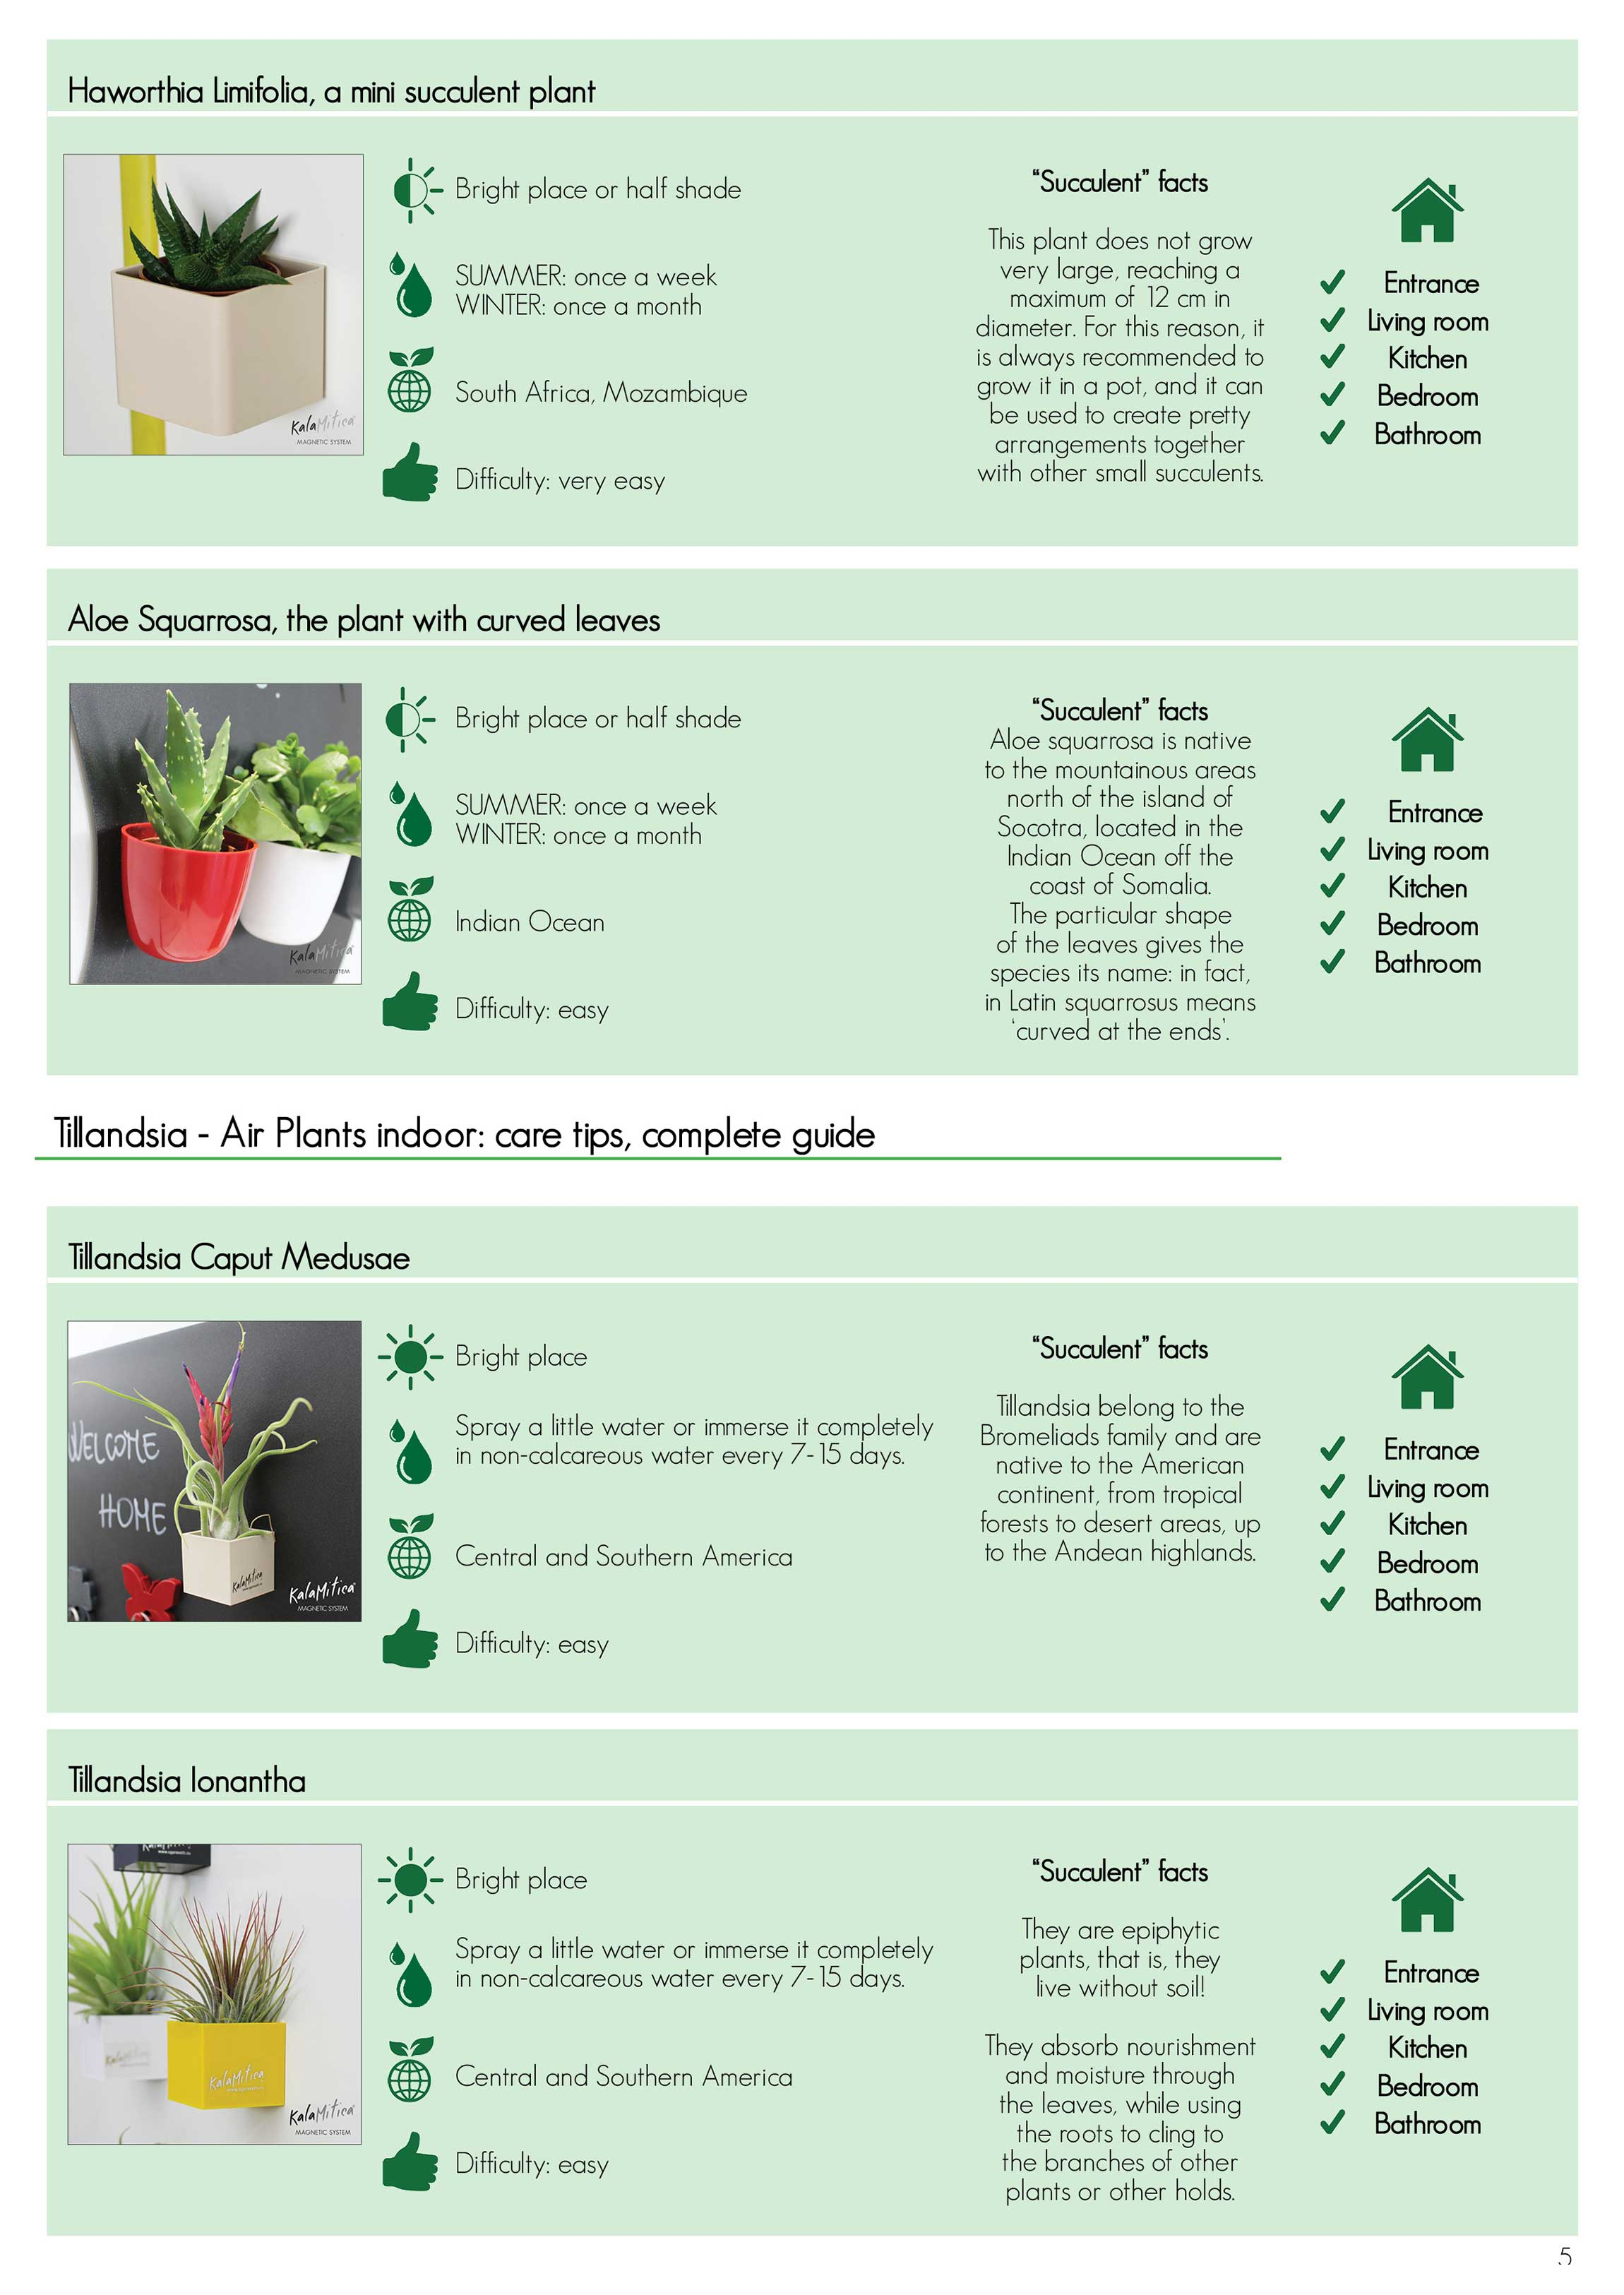 KalaMitica succulents: care tips, complete guide